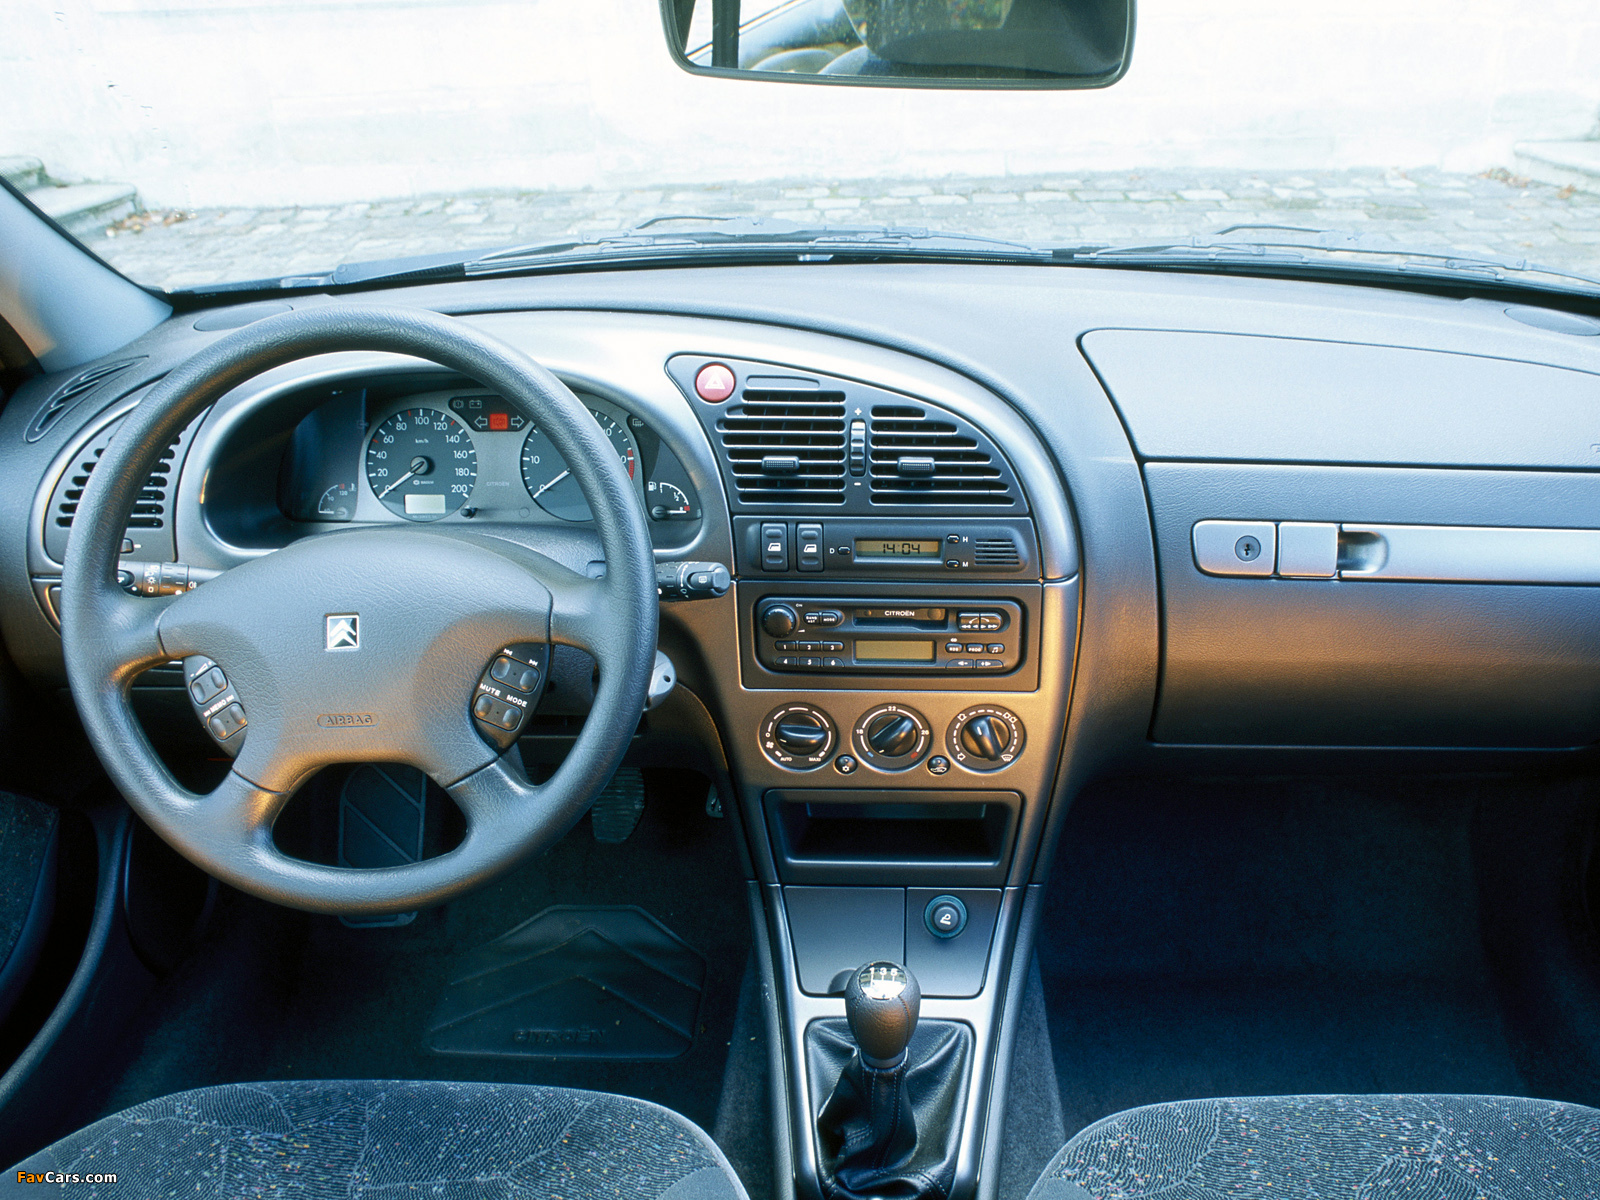 Citro n xsara break 1998 2000 images 1600x1200 for Interieur 306